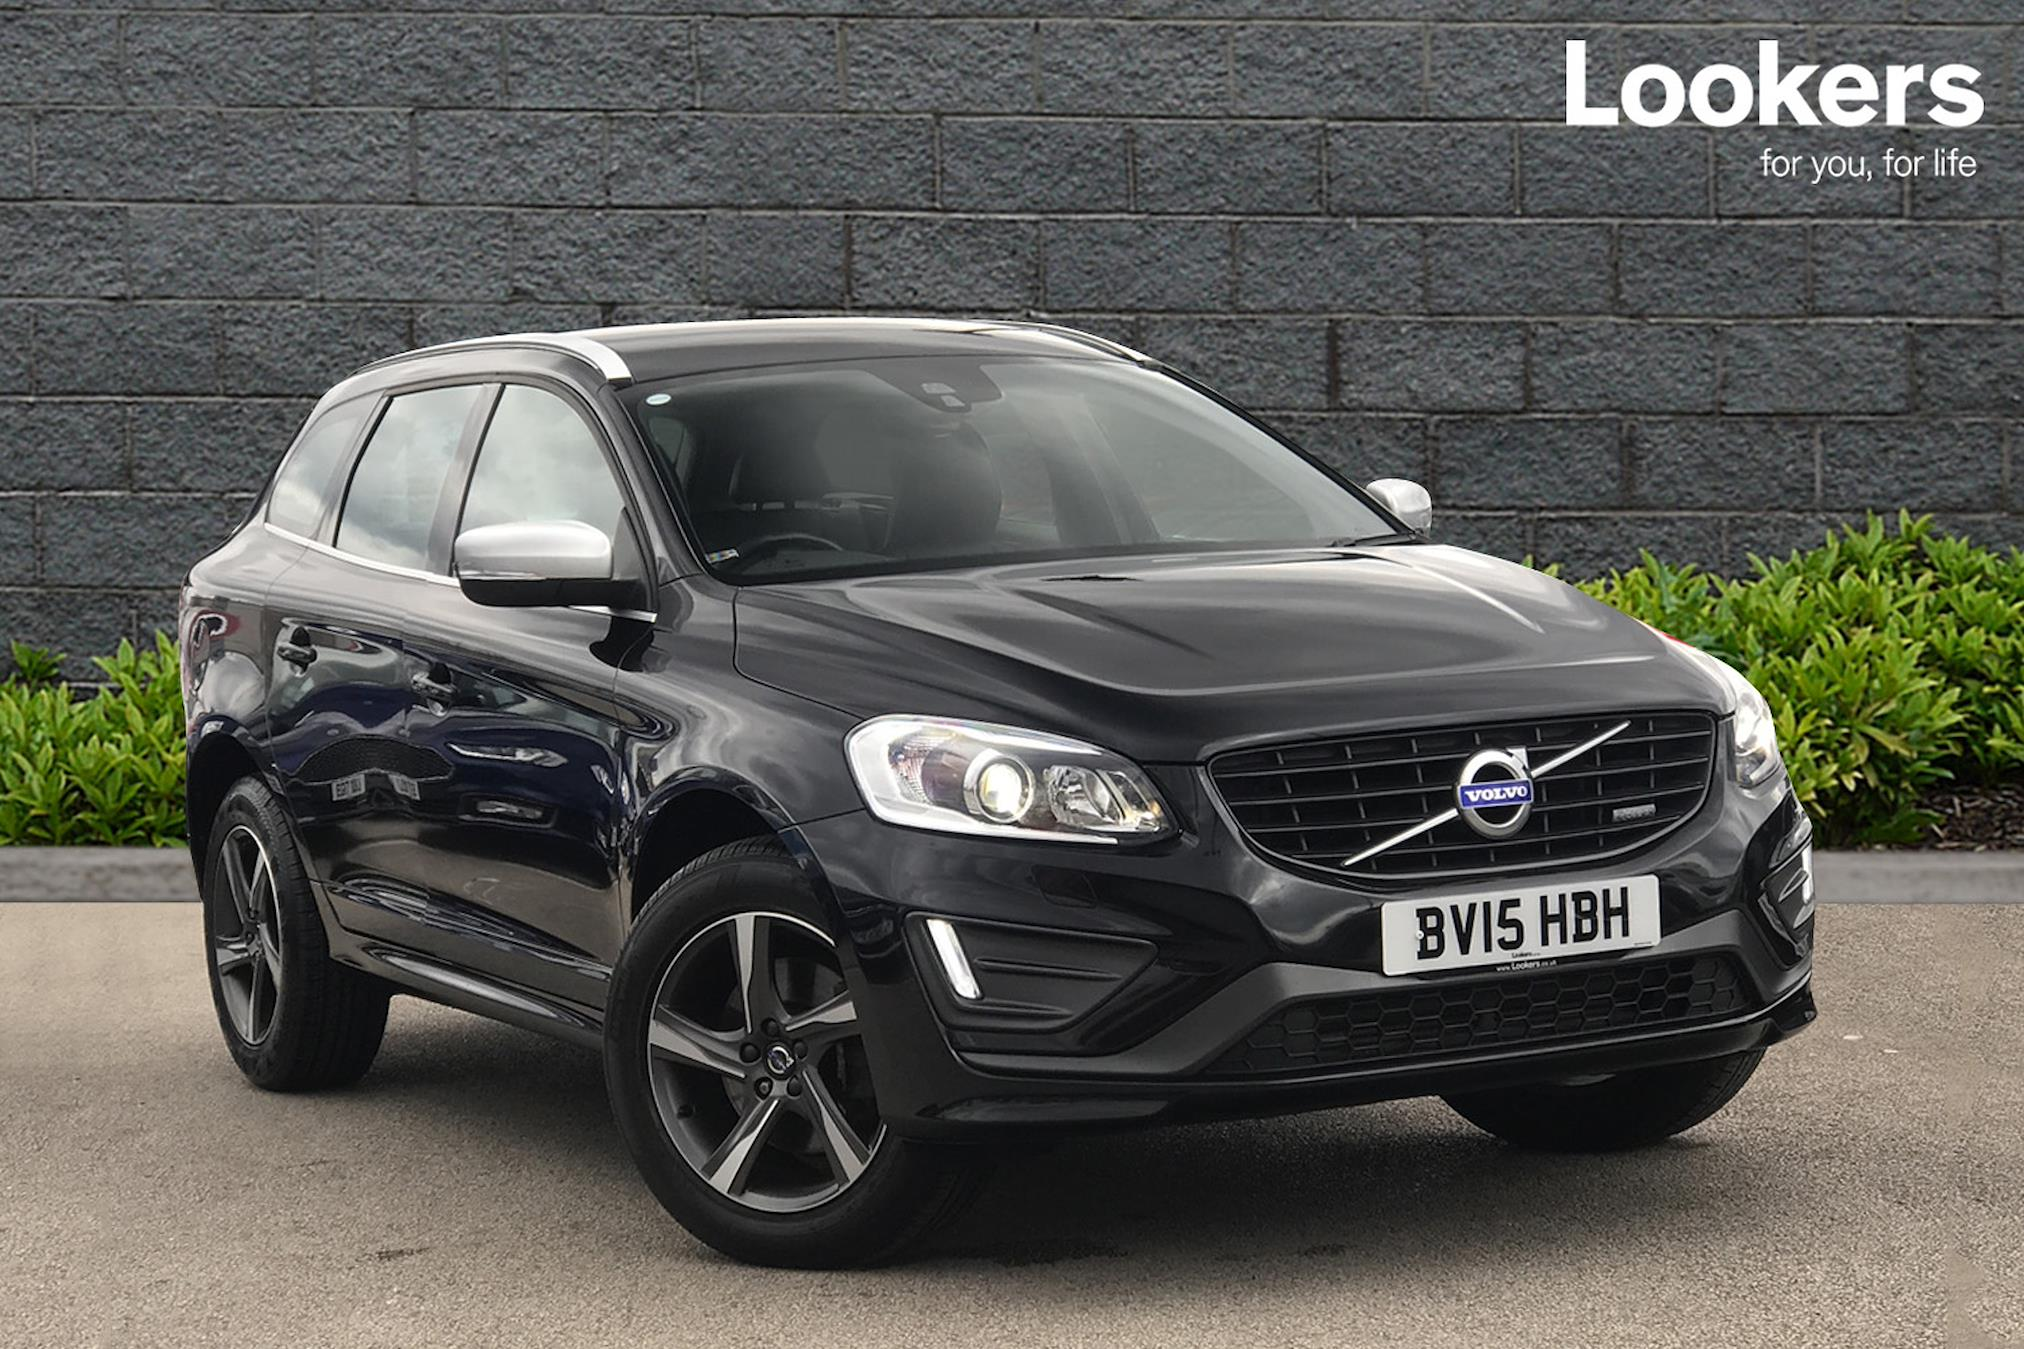 Used XC60 VOLVO D4 [181] R Design Lux Nav 5Dr 2015 | Lookers